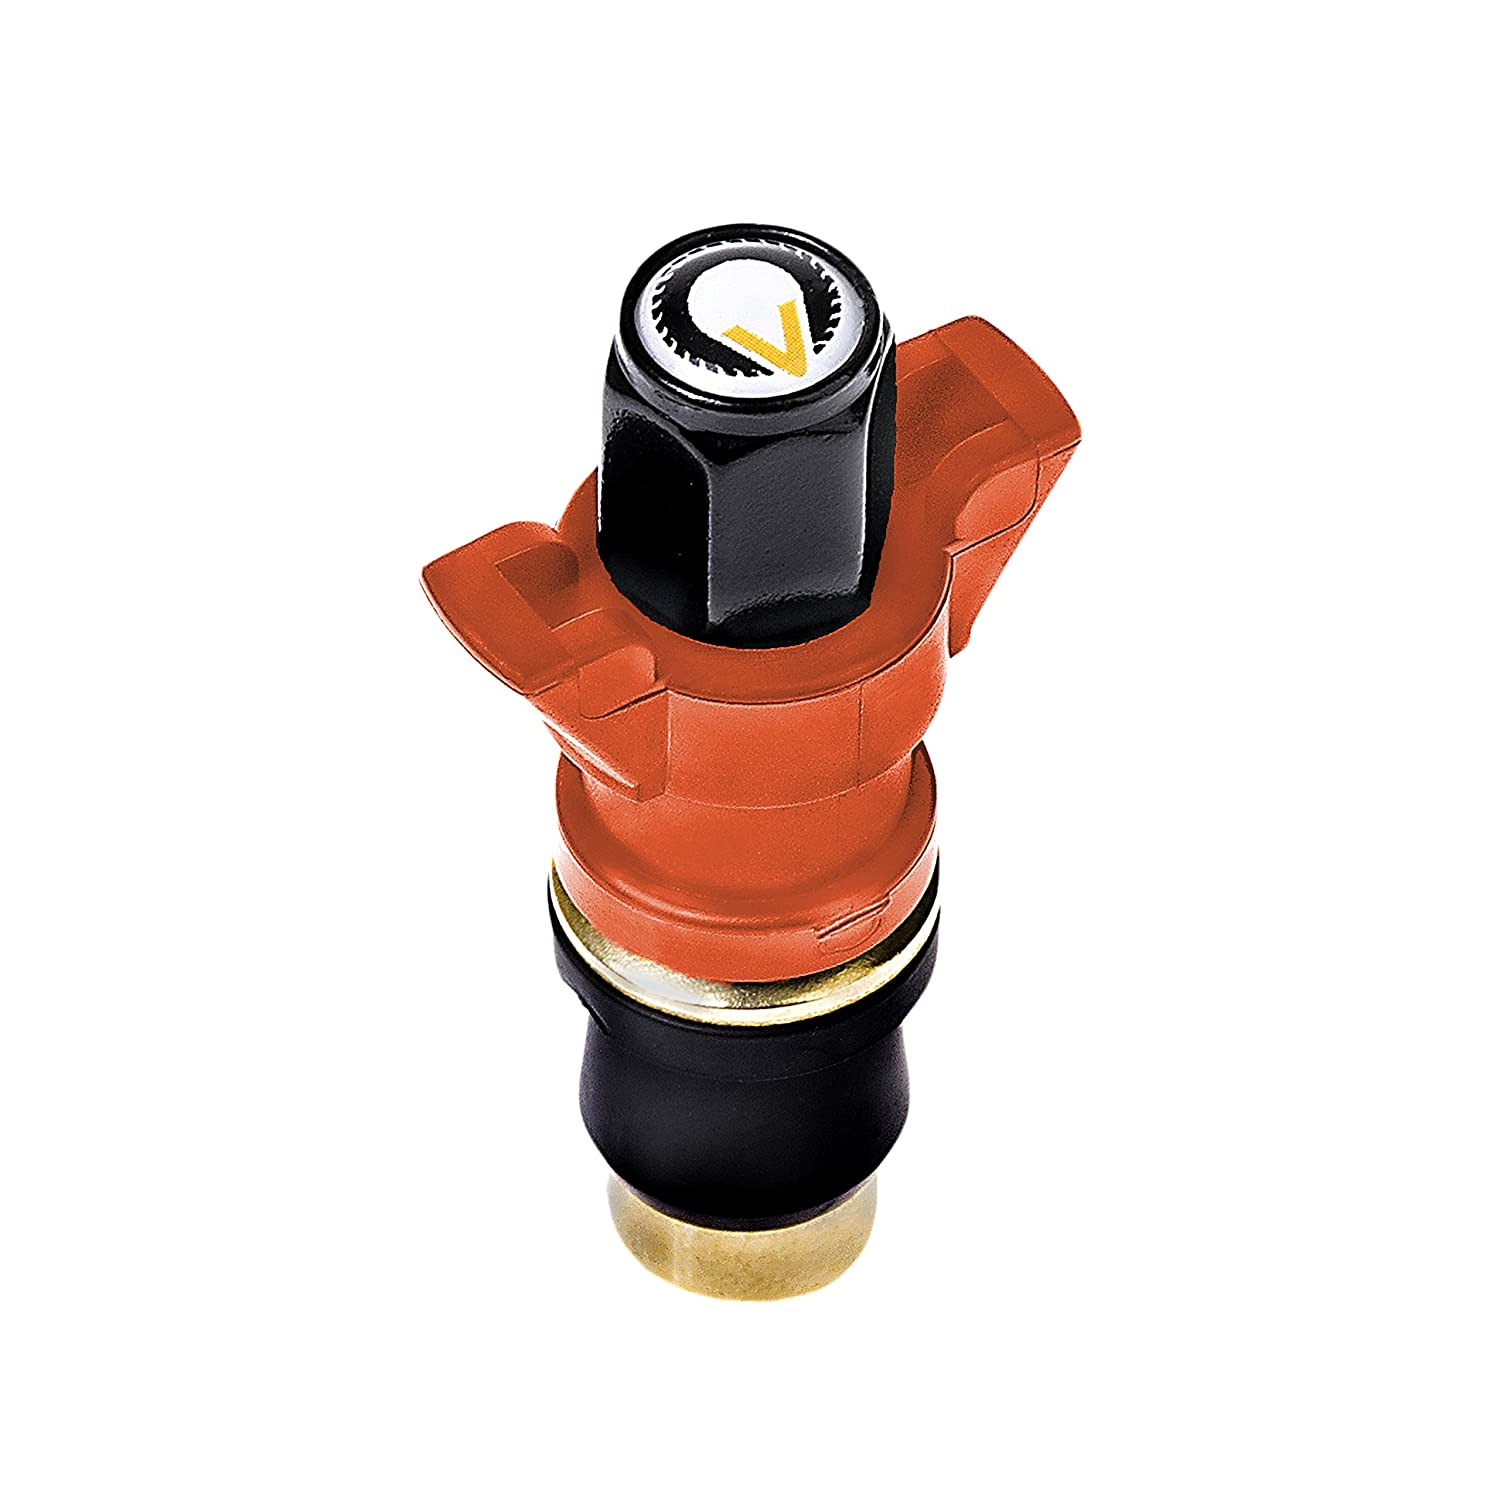 Red Colby Valve Emergency Valve Stem Replacement